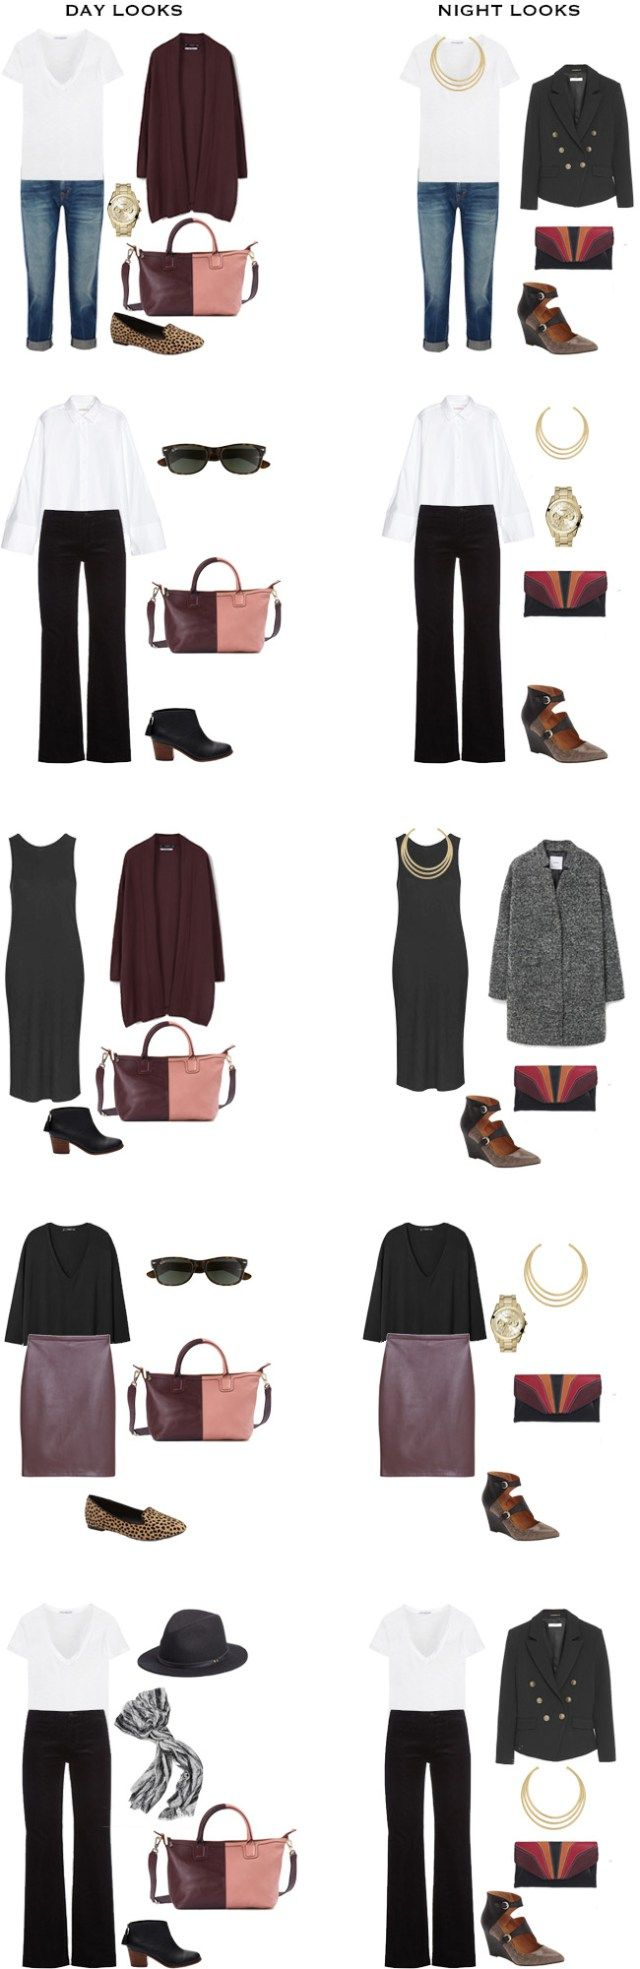 What to Wear for a Business Trip Outfits 1-10 #travel #traveltips #packinglight #travellight